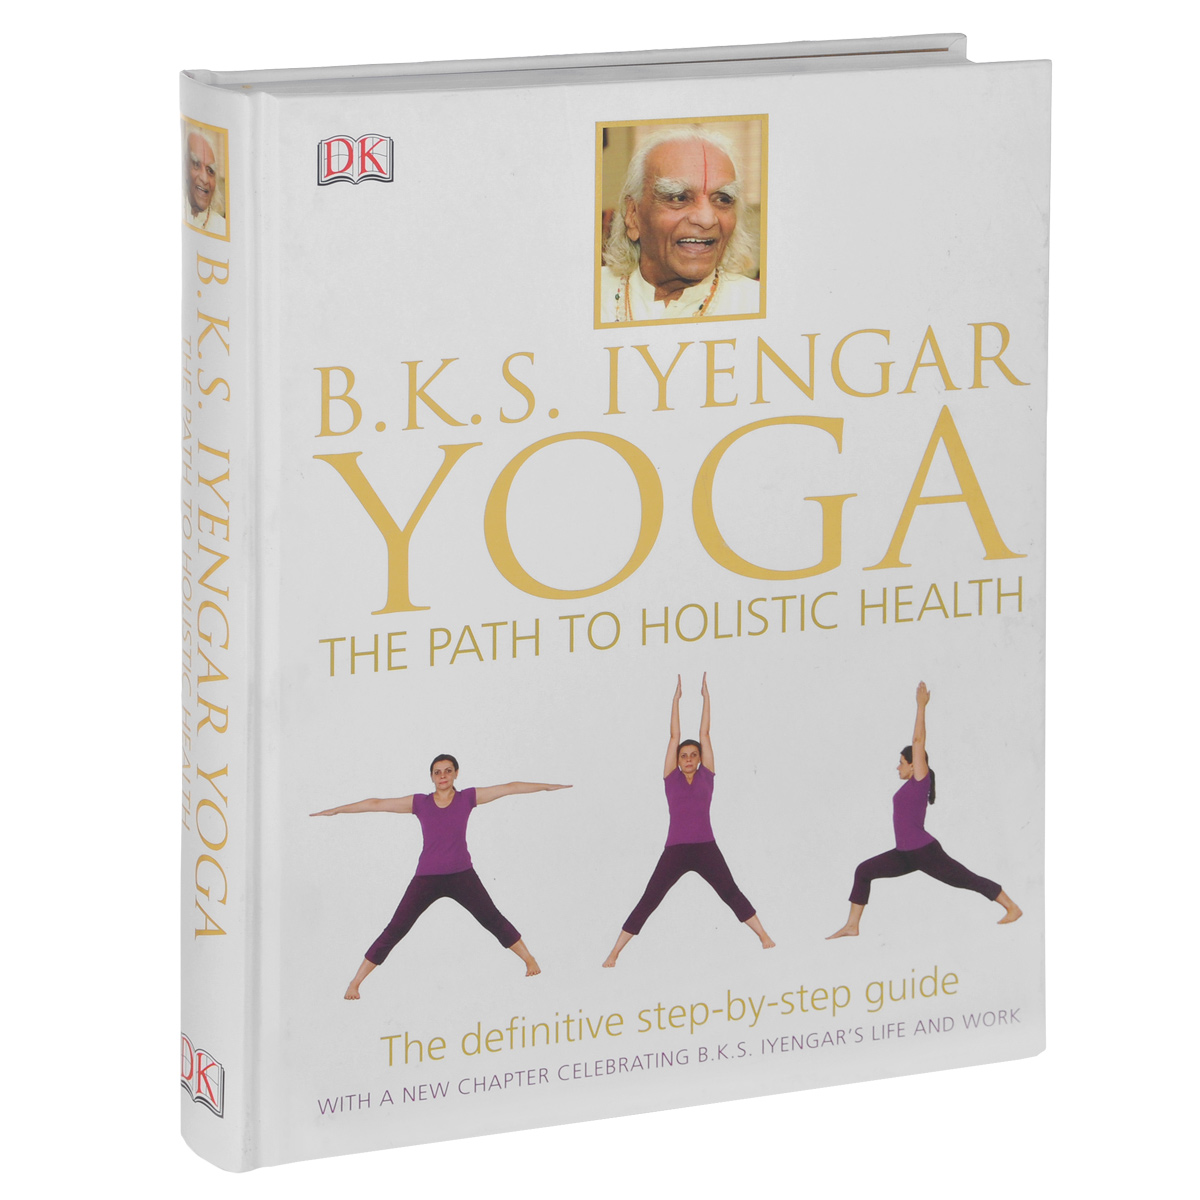 B.K.S. Iyengar Yoga: The Path to Holistic Health yoga half ball physical fitness appliance exercise balance ball point massage stepping stones bosu balance pods gym yoga pilates